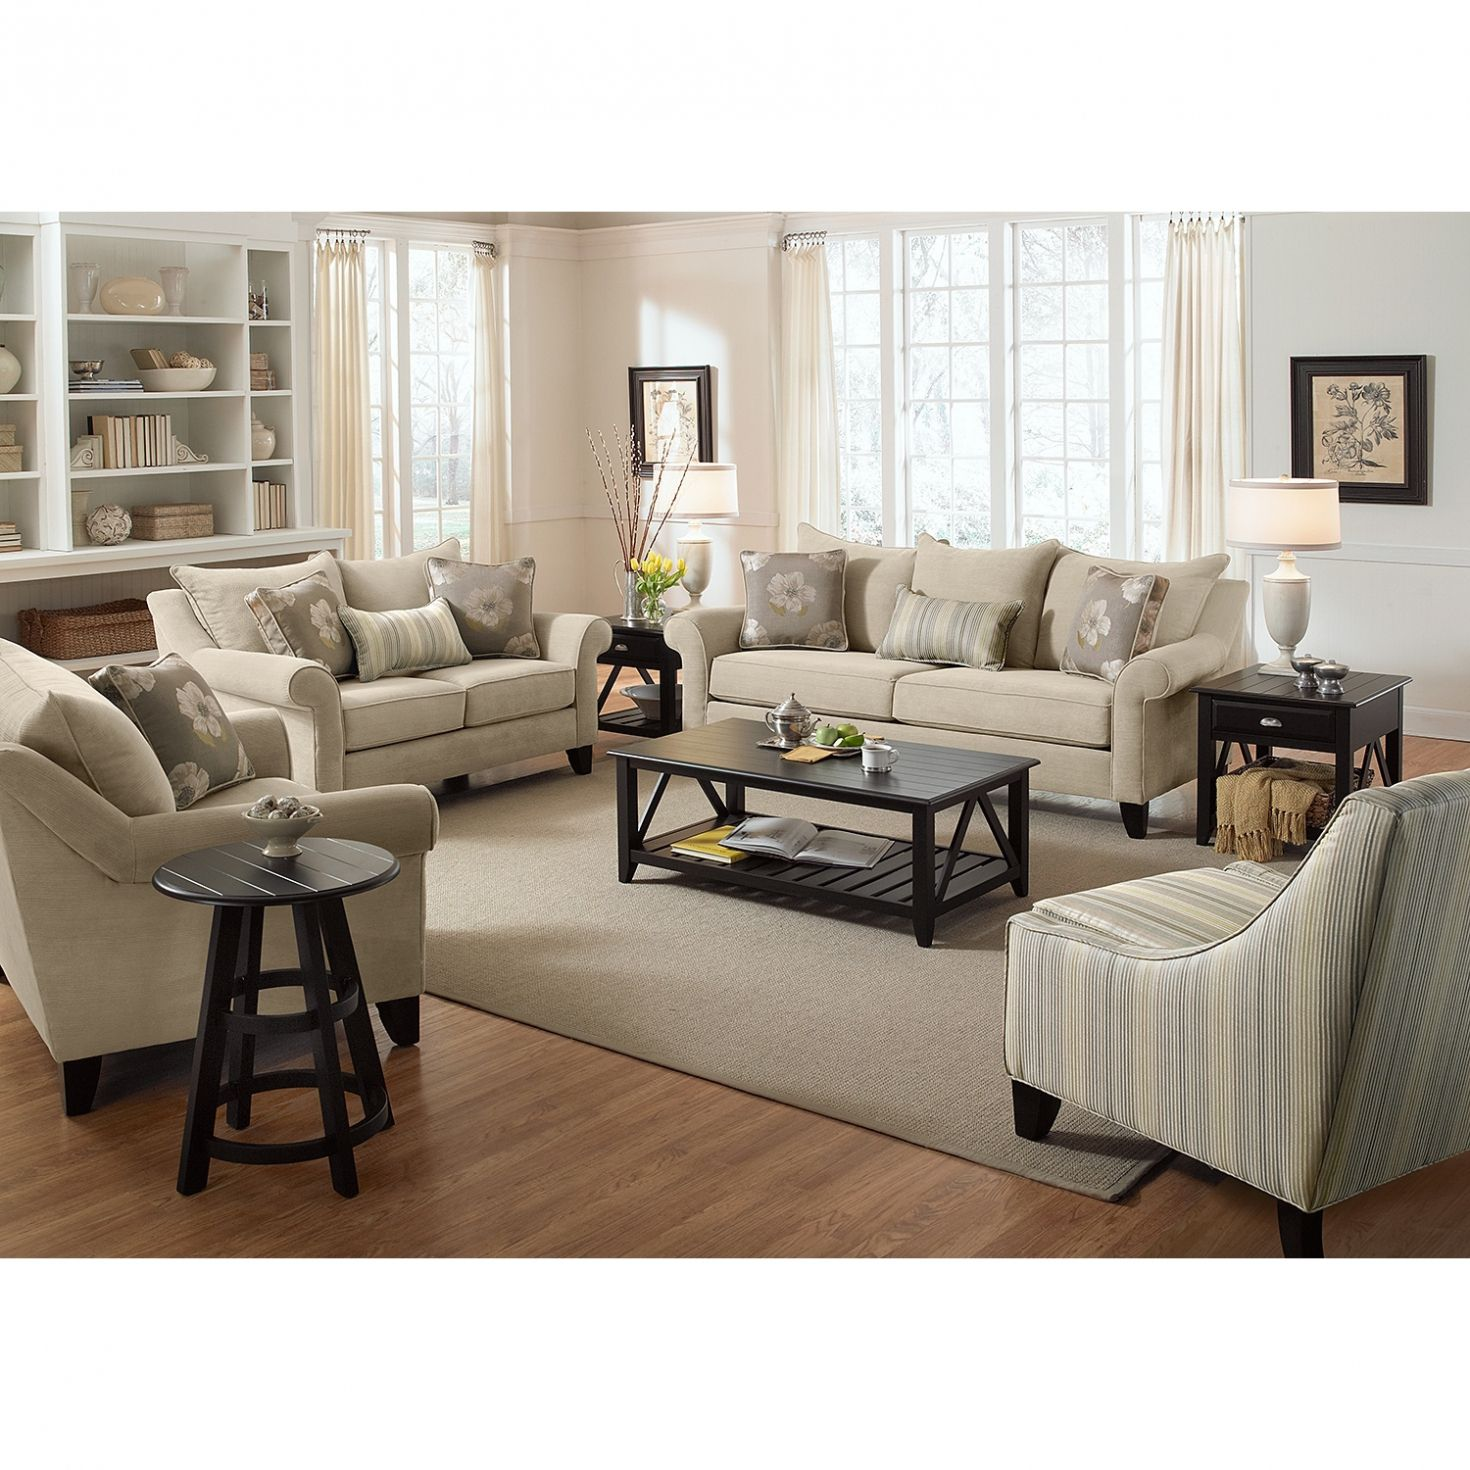 11 Smart Designs Of How To Make 3 Piece Living Room Set Cheap In 2021 Furniture City Living Room Value City Furniture